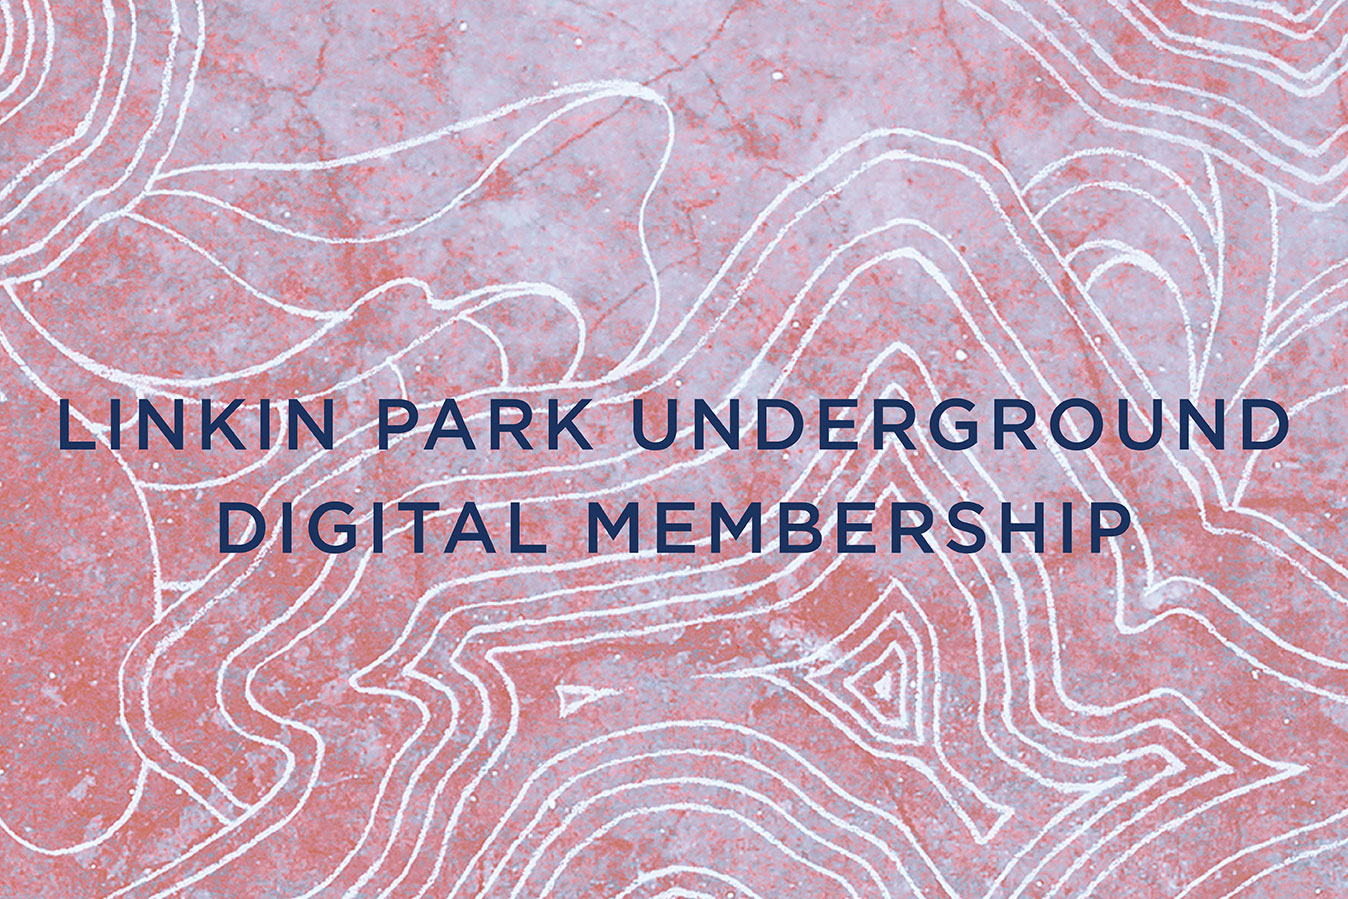 LPU 17 Digital Membership